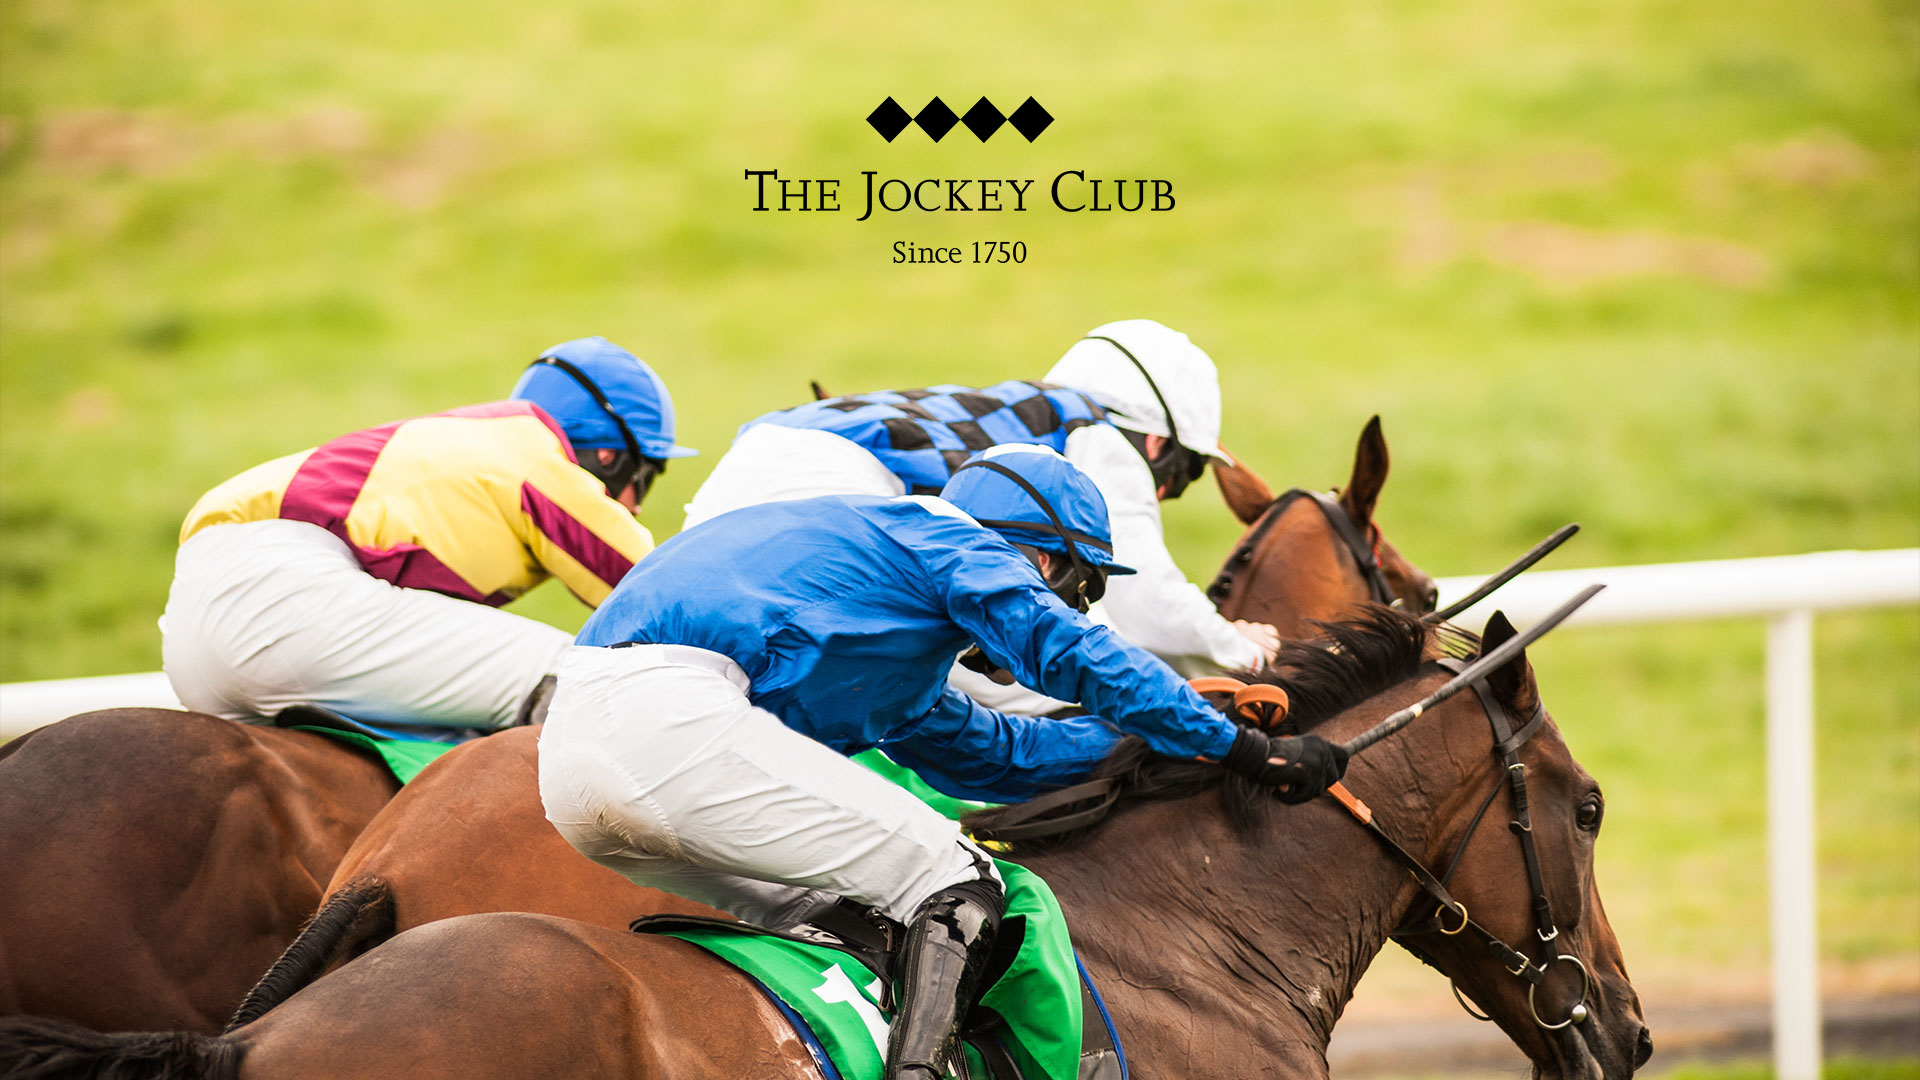 The Jockey Club since 1750